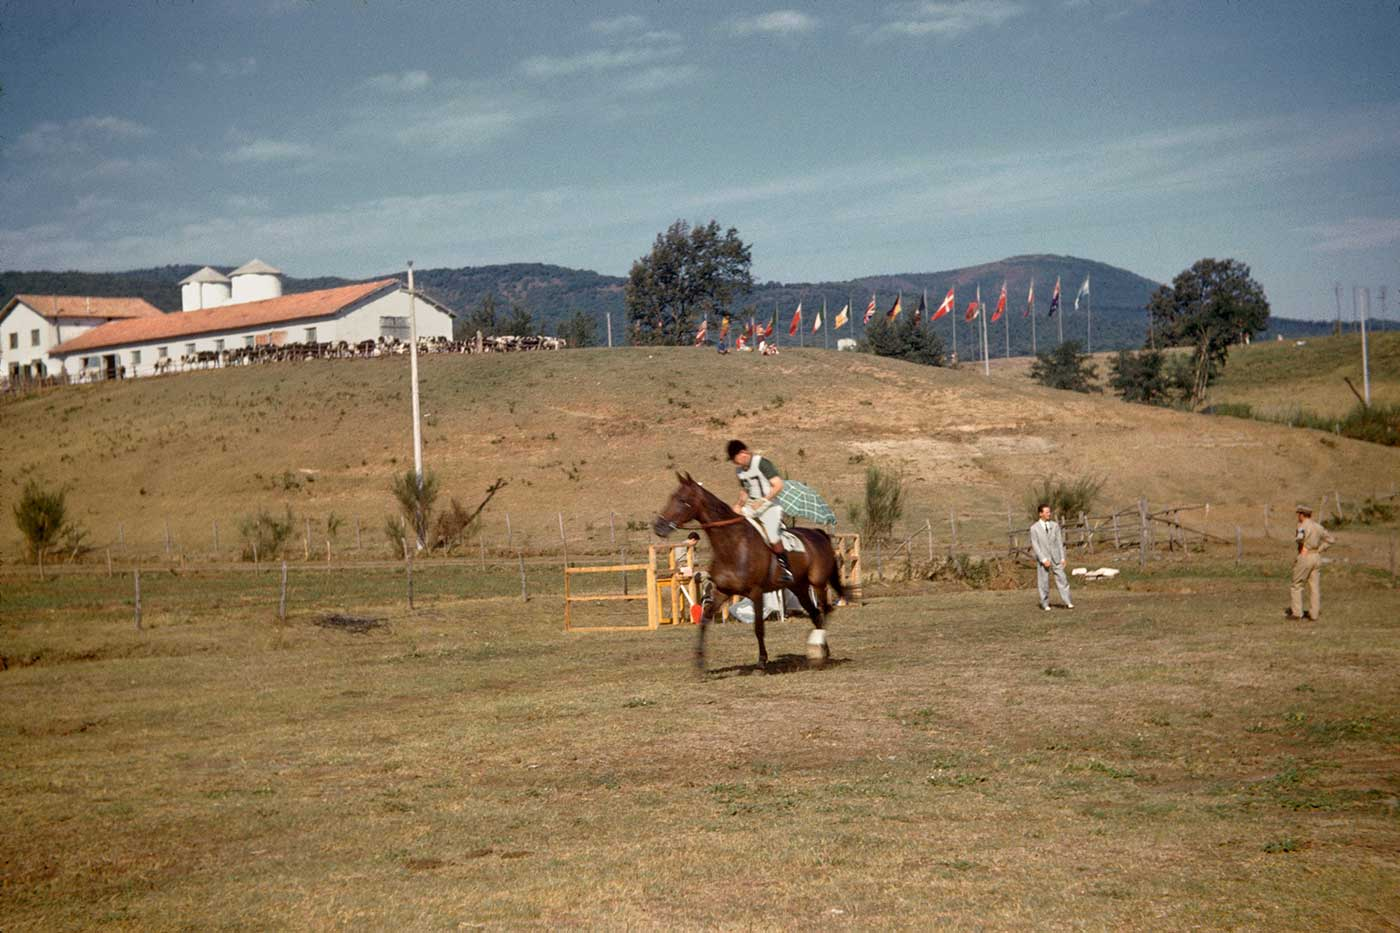 Neale and Mirrabooka  at the cross-country event, Rome Olympics, 1960. - click to view larger image